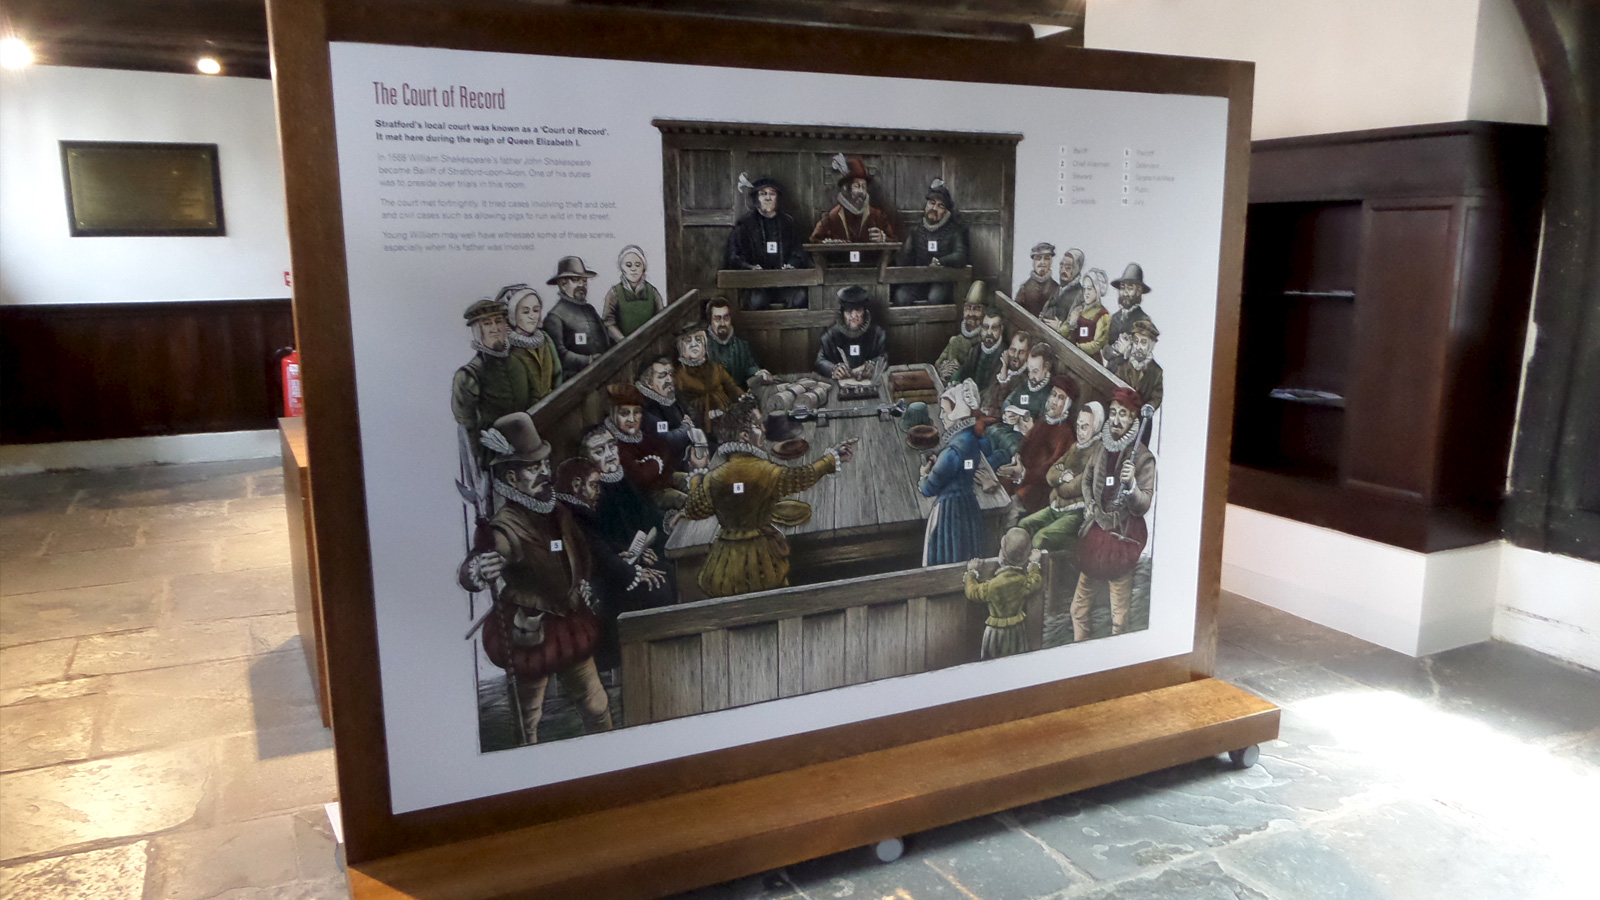 Image Makers Shakespeare's School Guildhall